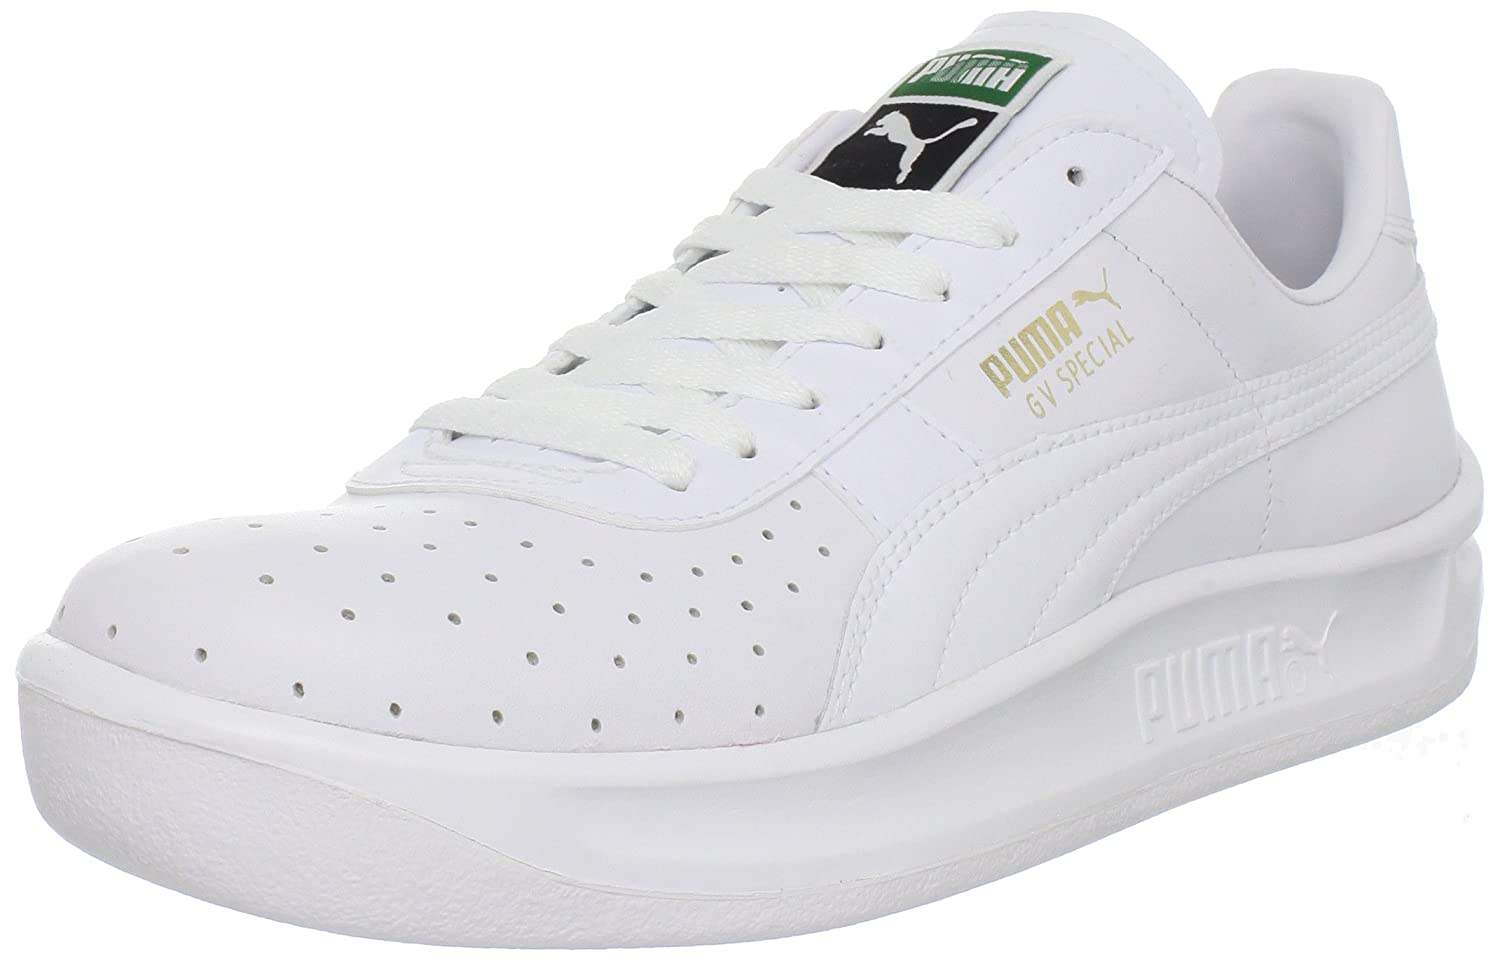 PUMA Men's GV Special Fashion Sneaker B0058XF3TC 10.5 M US|White/White